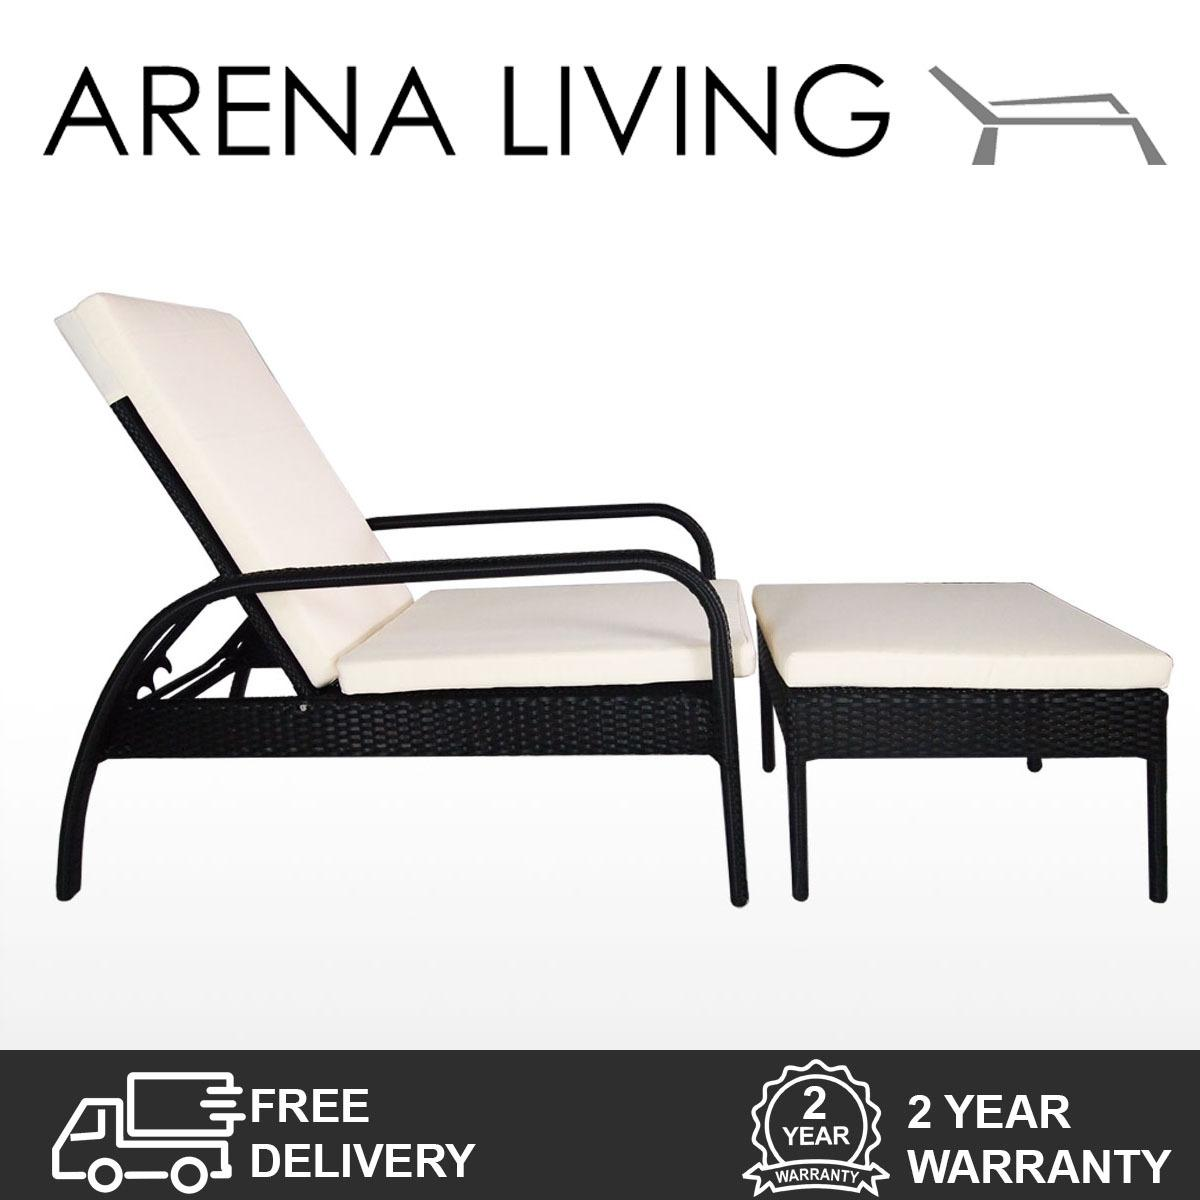 Compare Arena Living Ferraria Sunbed White Cushion Fully Assembled Prices